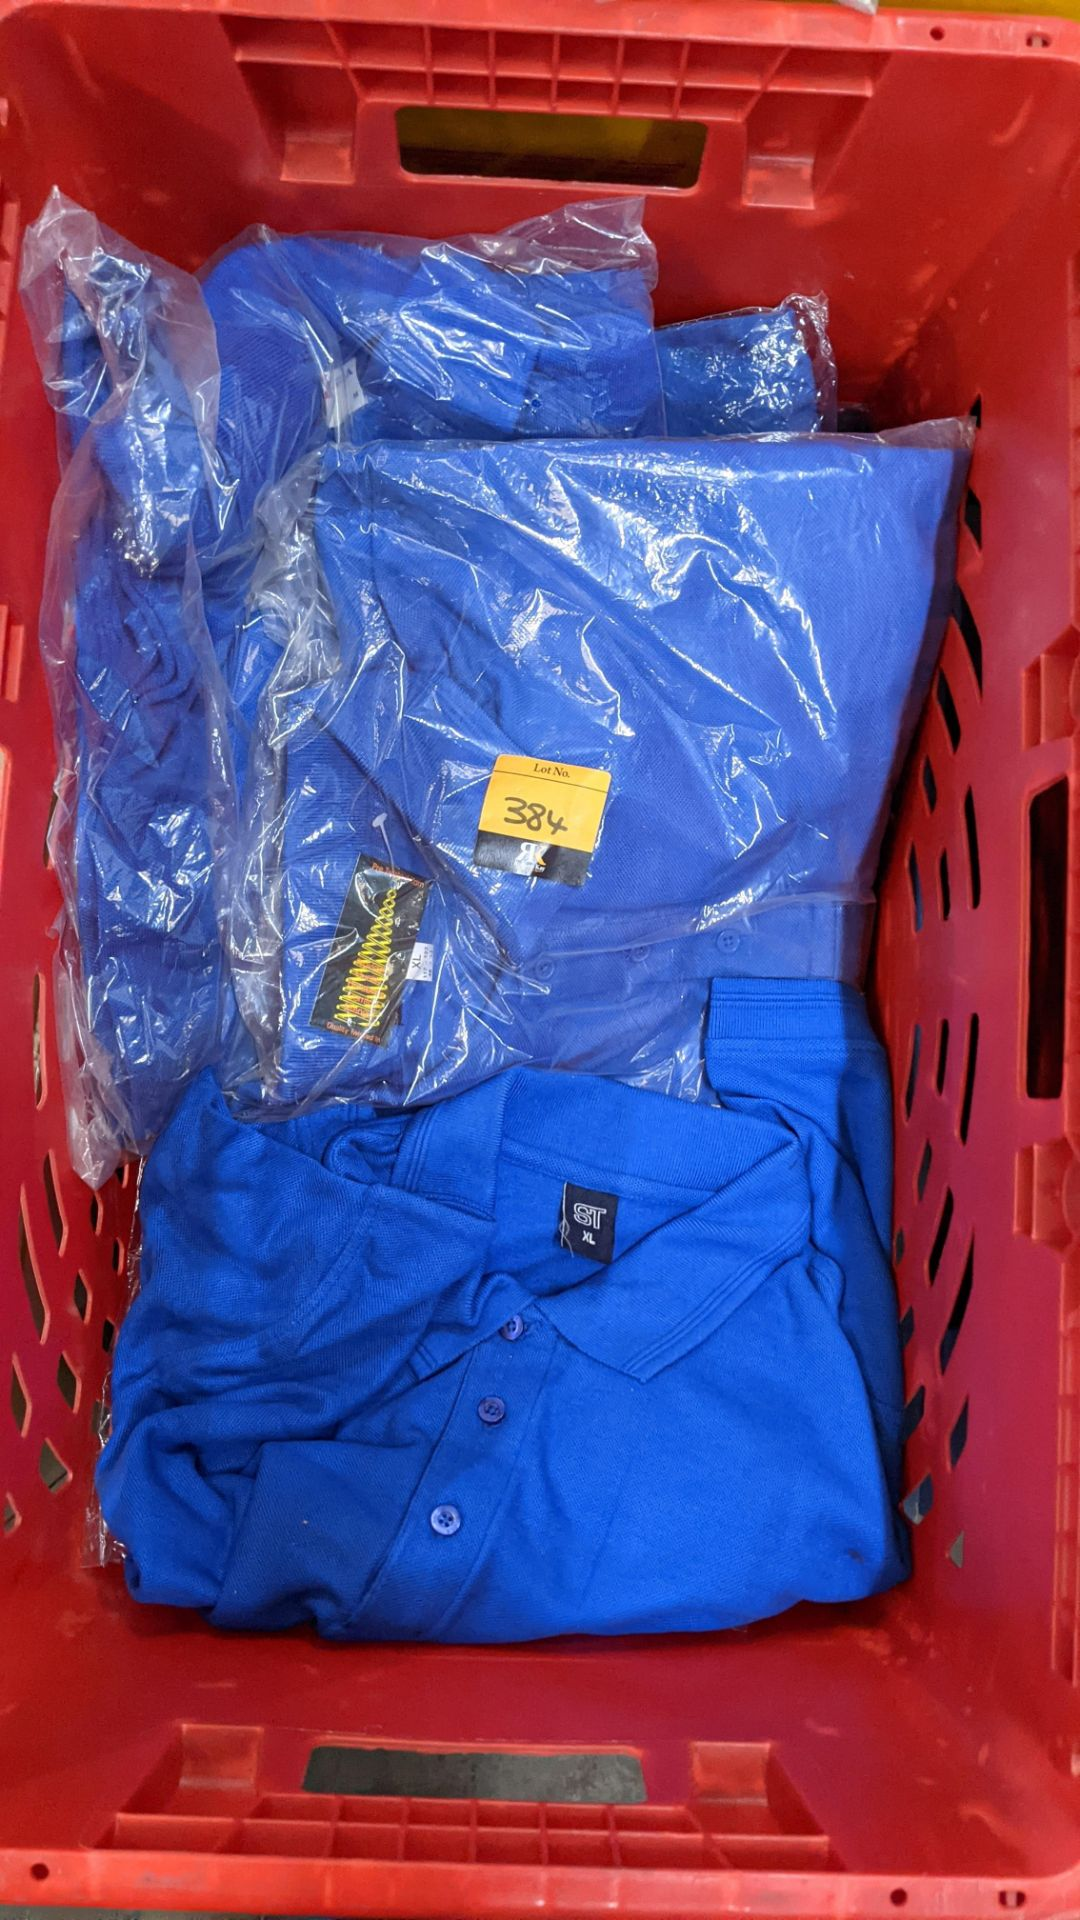 Approx 17 off bright blue polo shirts - Image 4 of 4